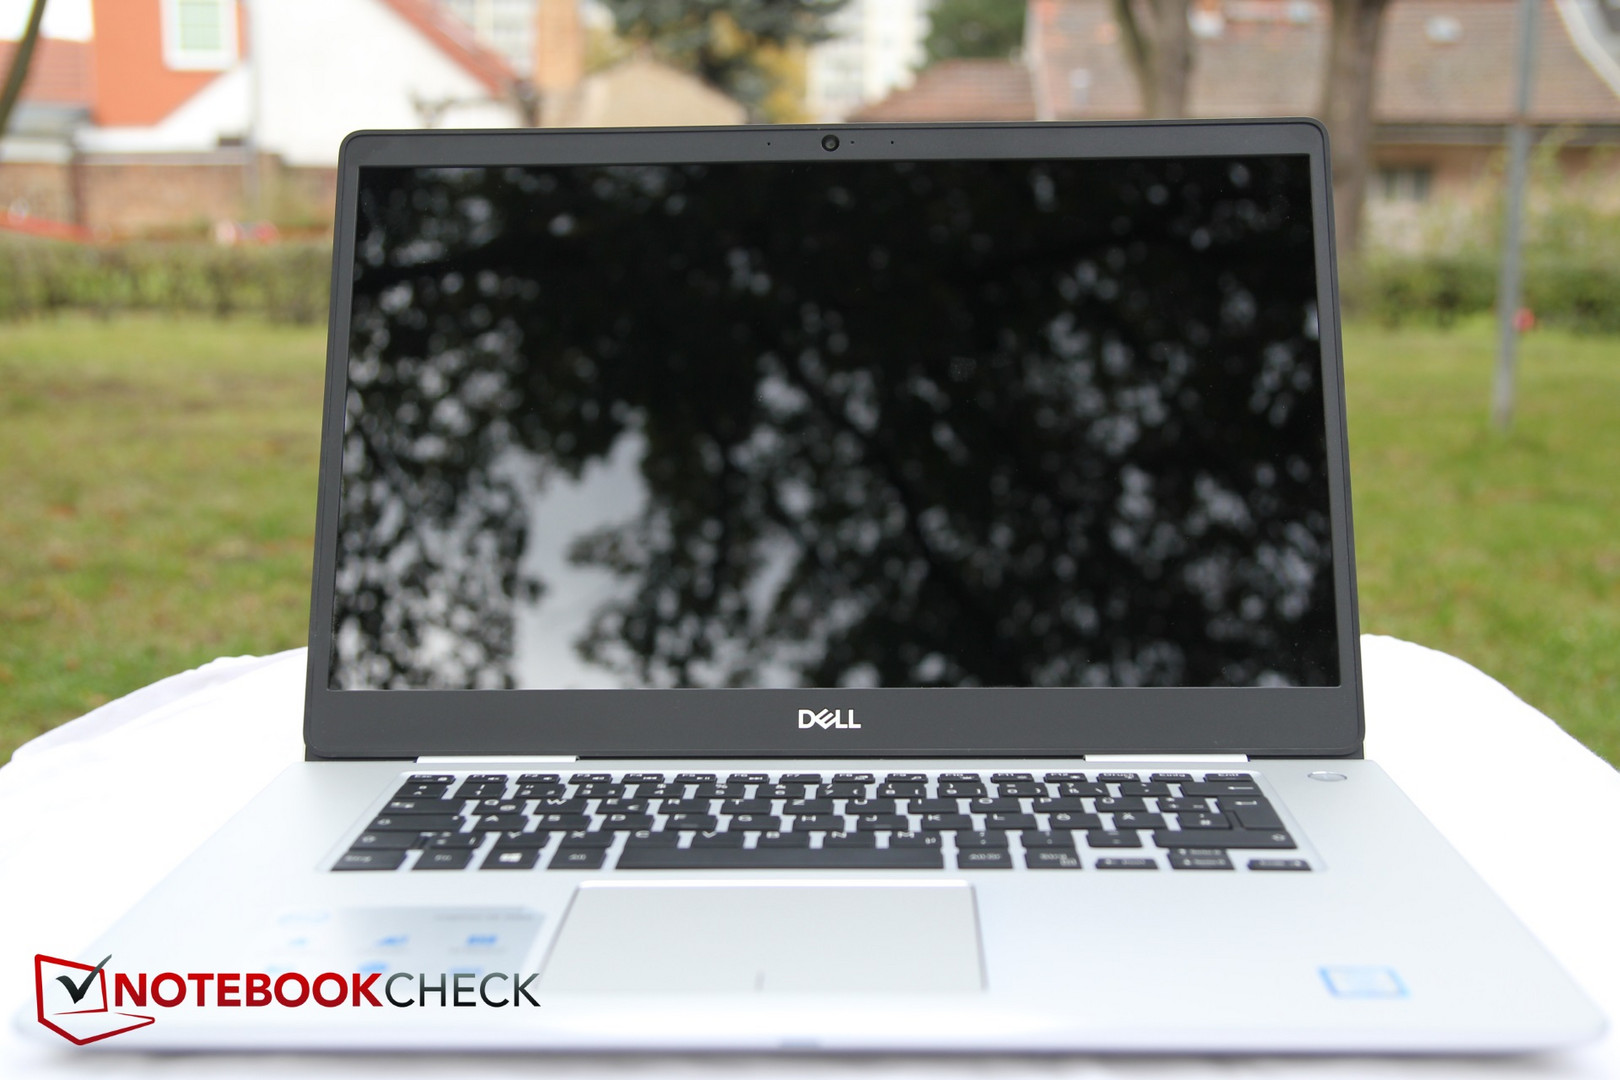 Dell Inspiron 15 7570 (i7-8550U, 940MX) Laptop Review